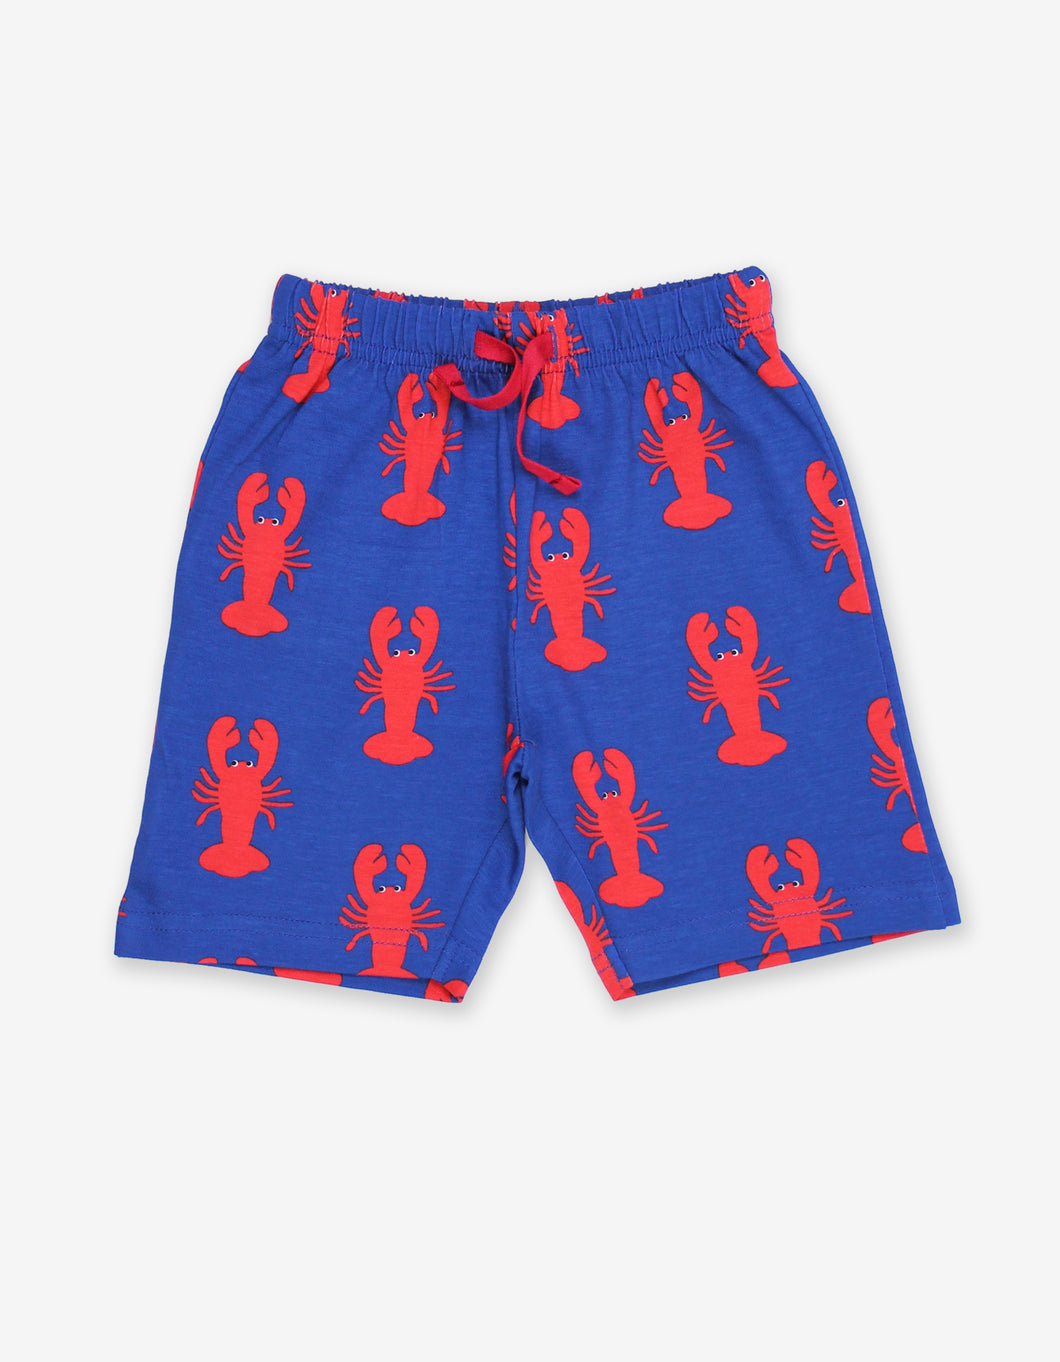 Organic Lobster Print Shorts